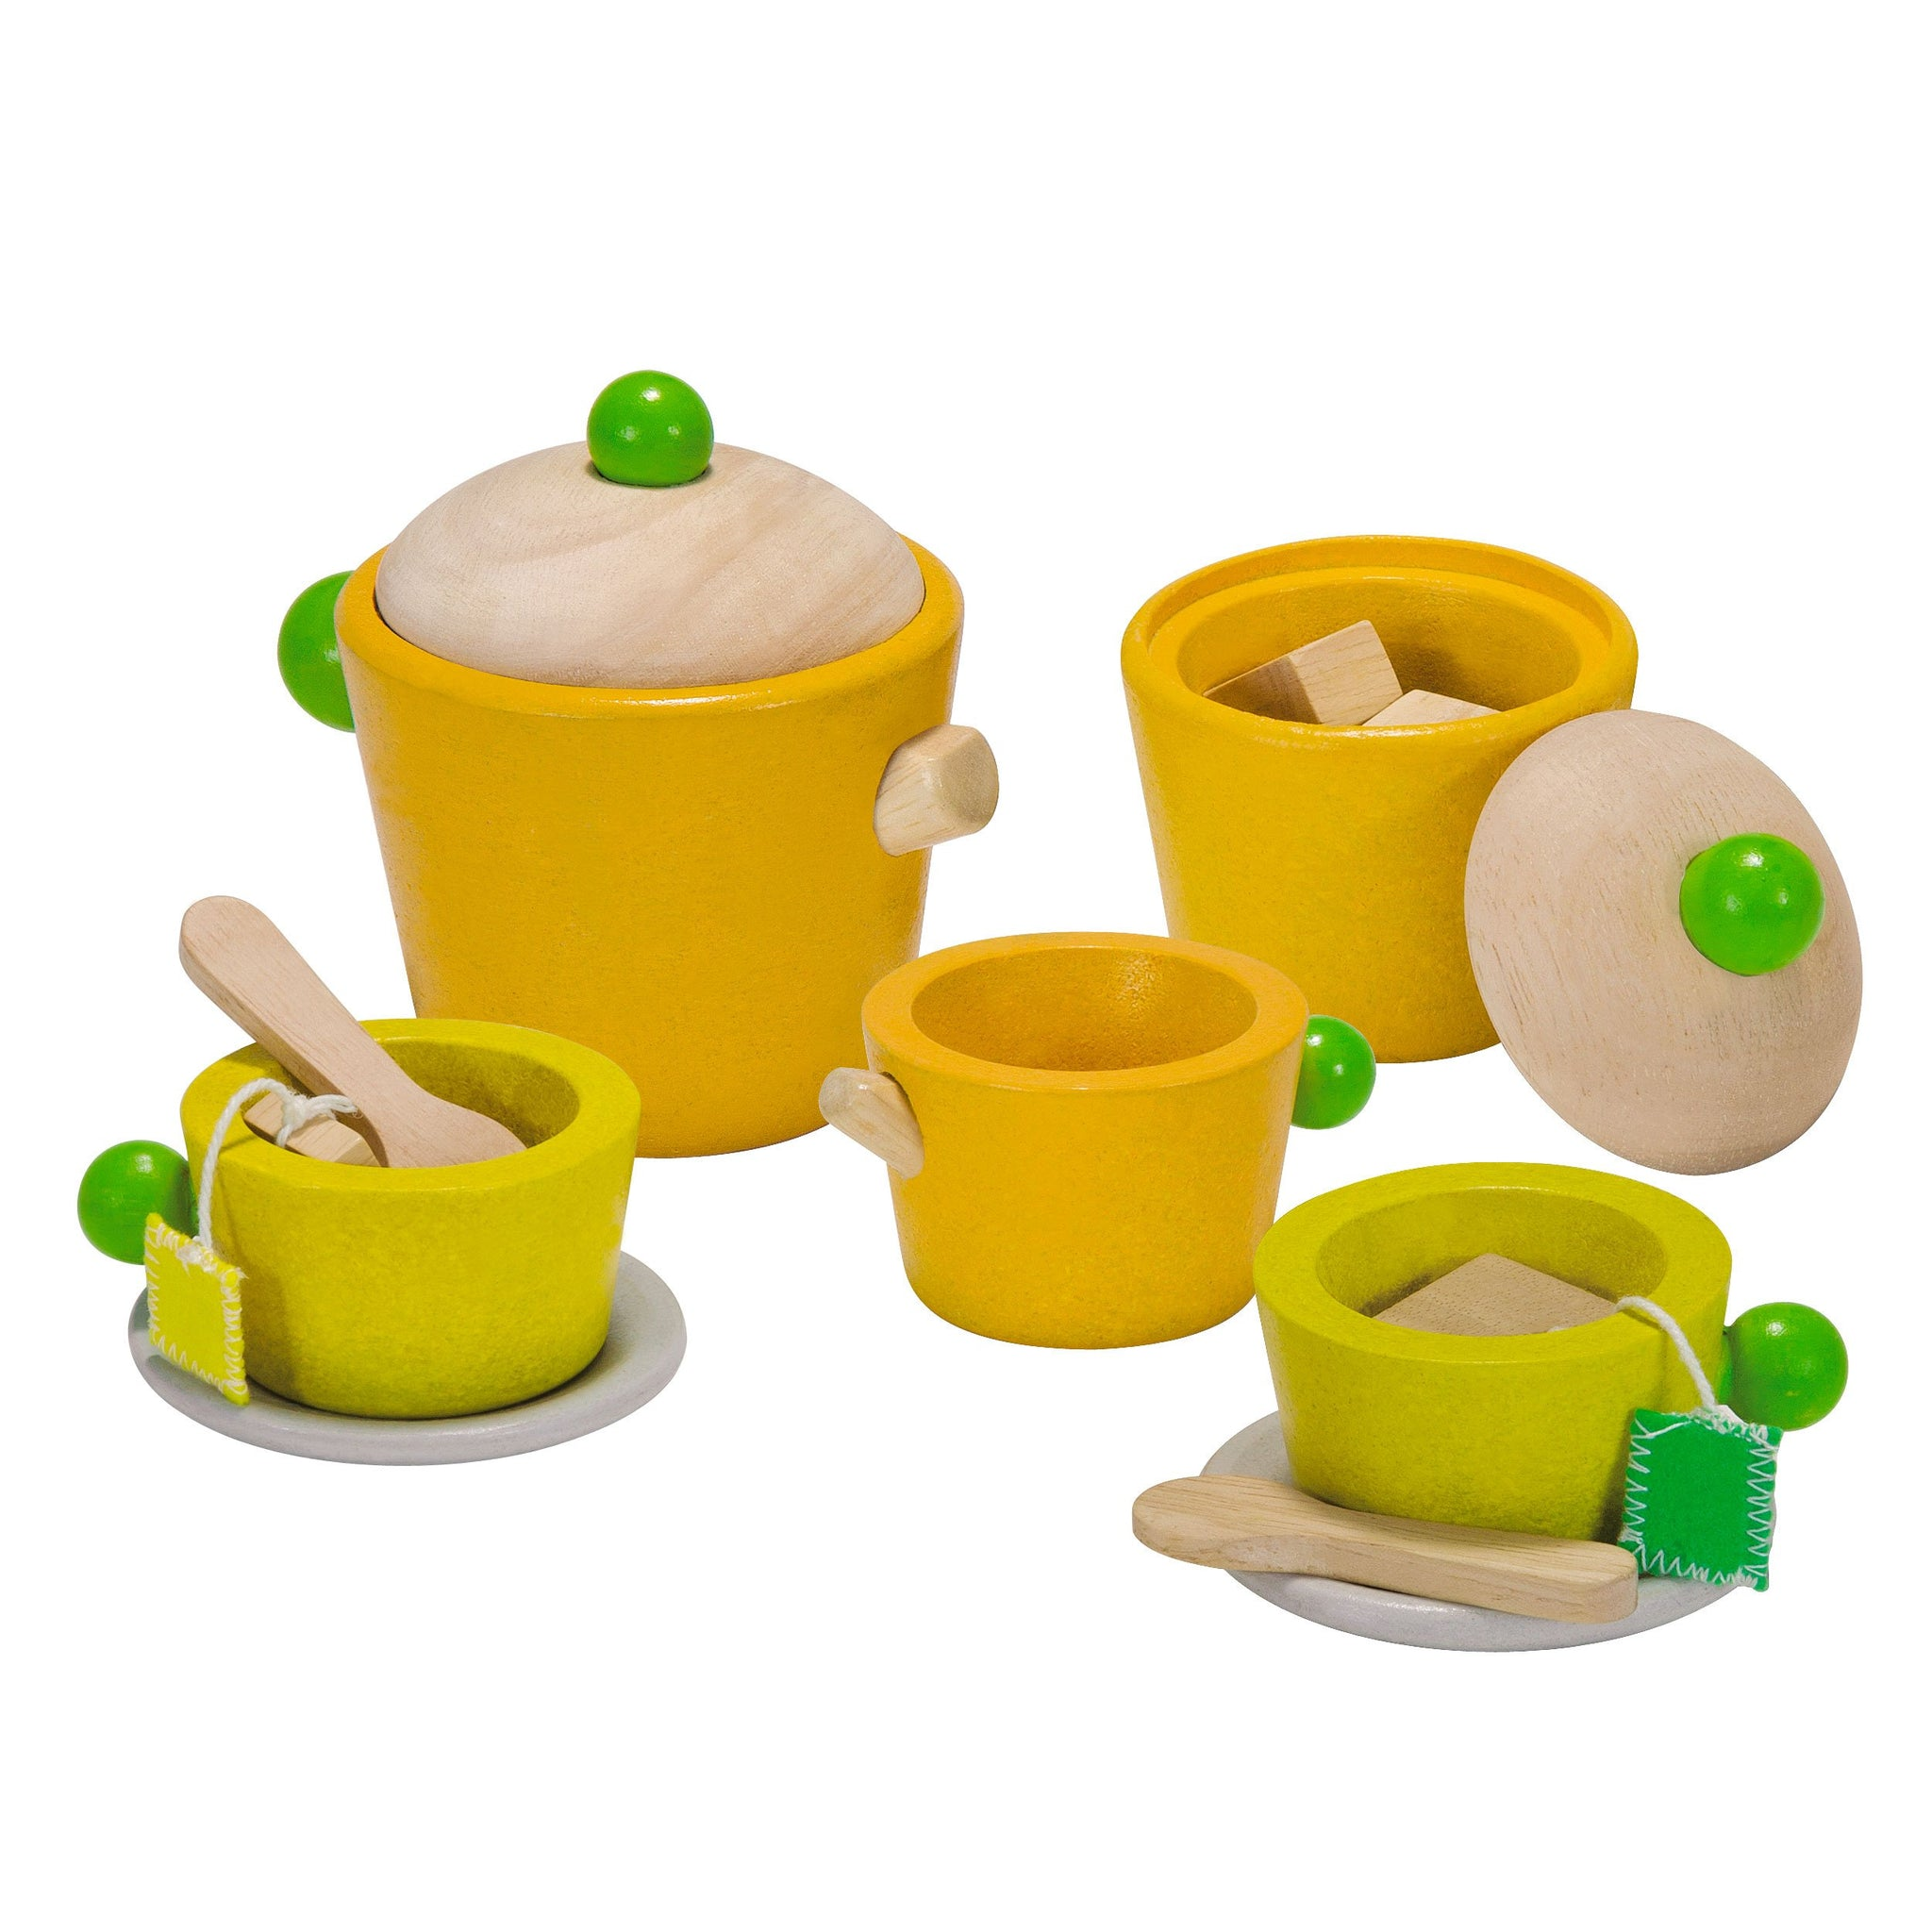 Plan Toys Tea Set PlanToys Toy Kitchens & Play Food at Little Earth Nest Eco Shop